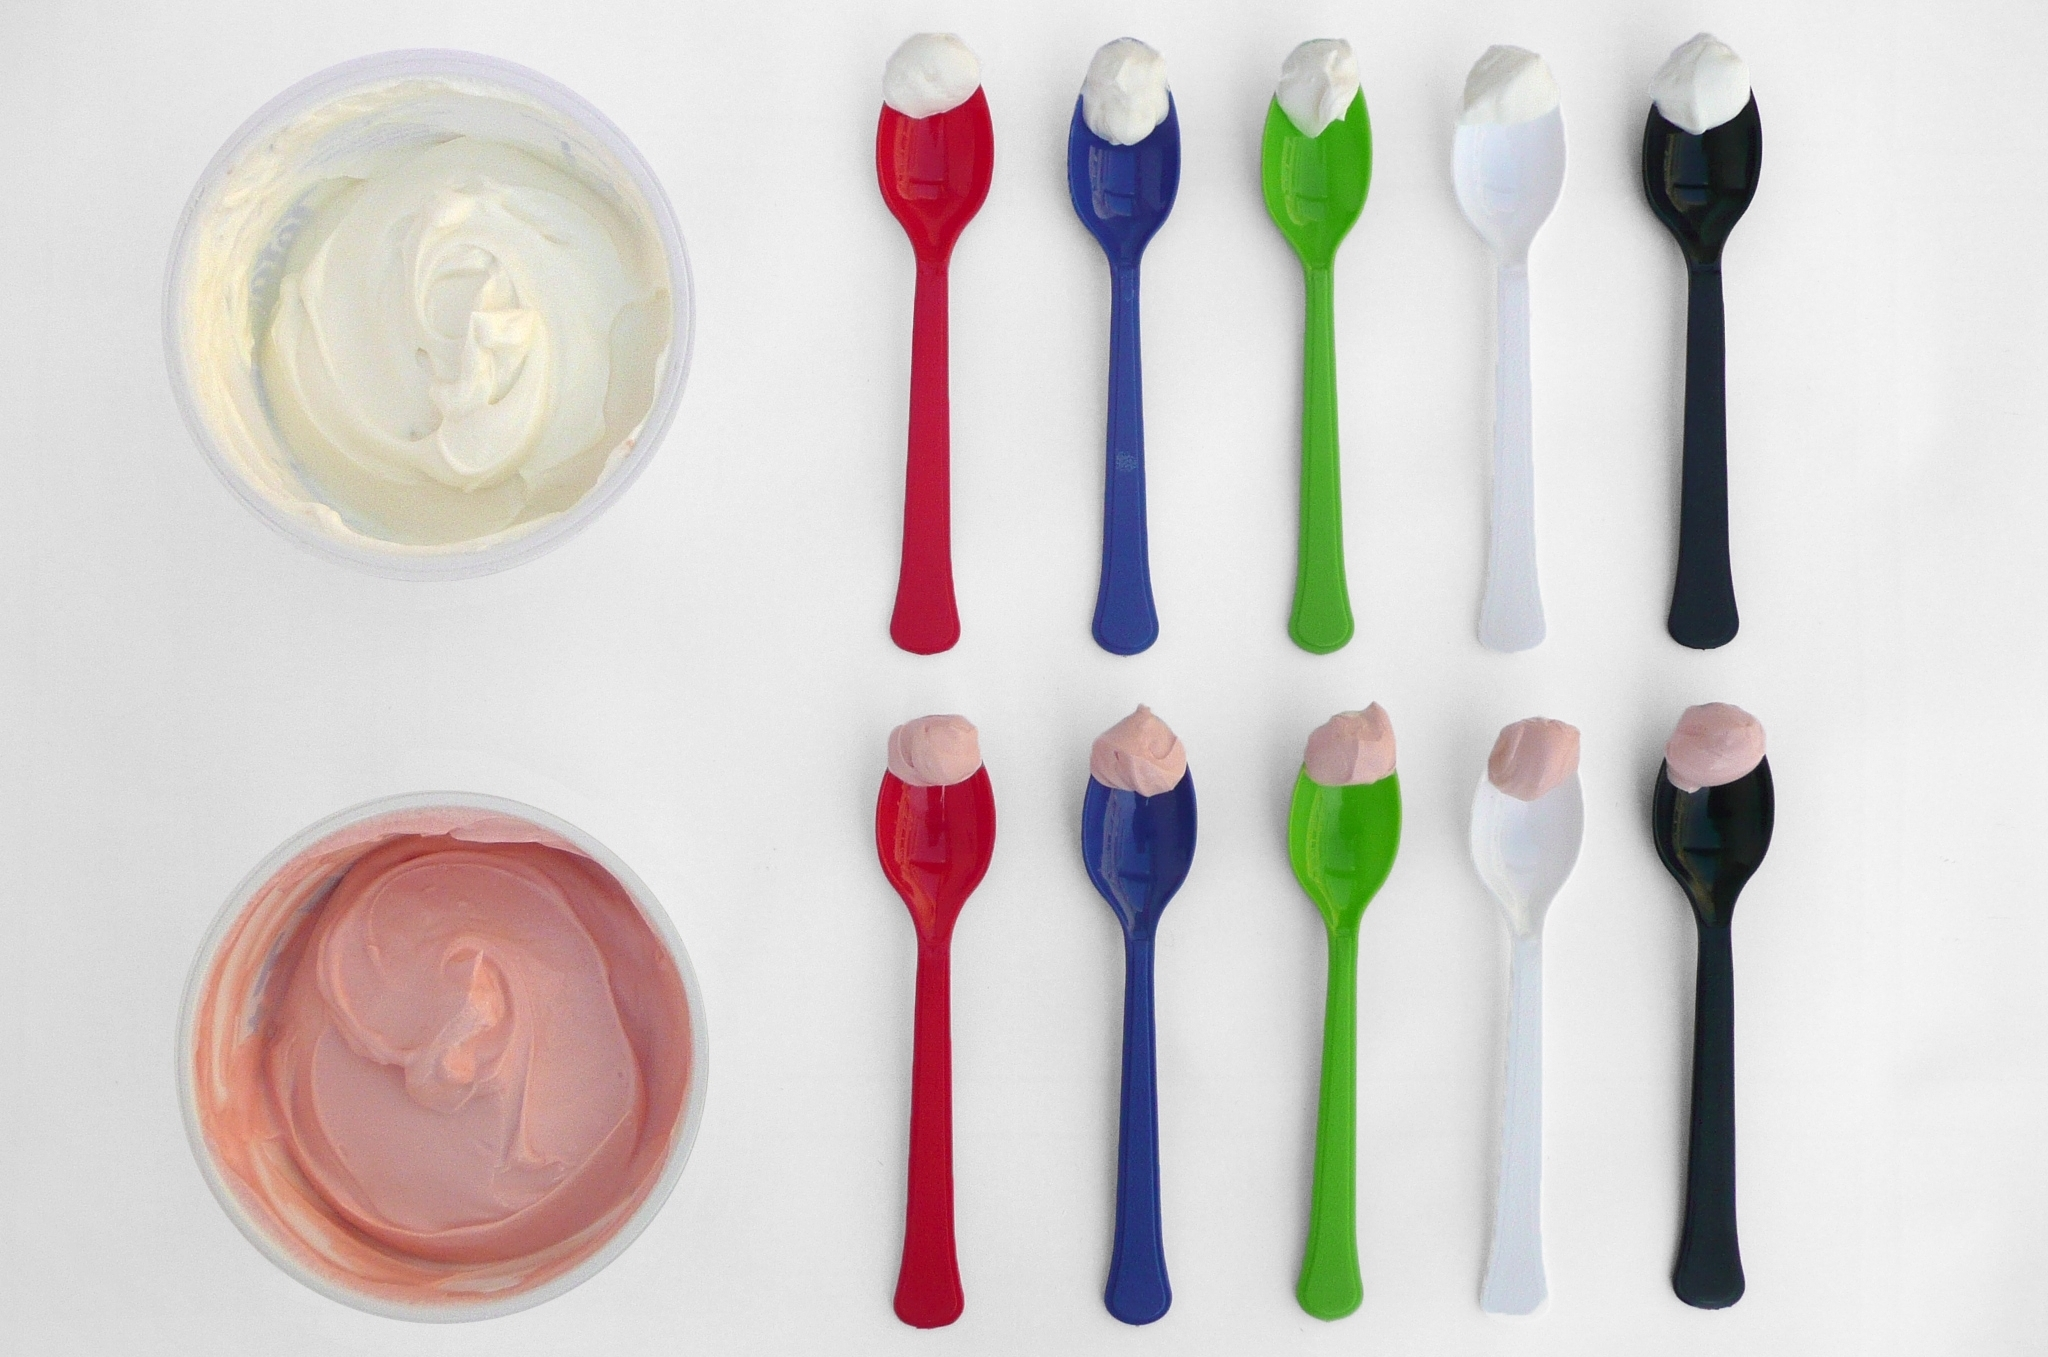 Your Choice In Utensils Can Change How Food Tastes